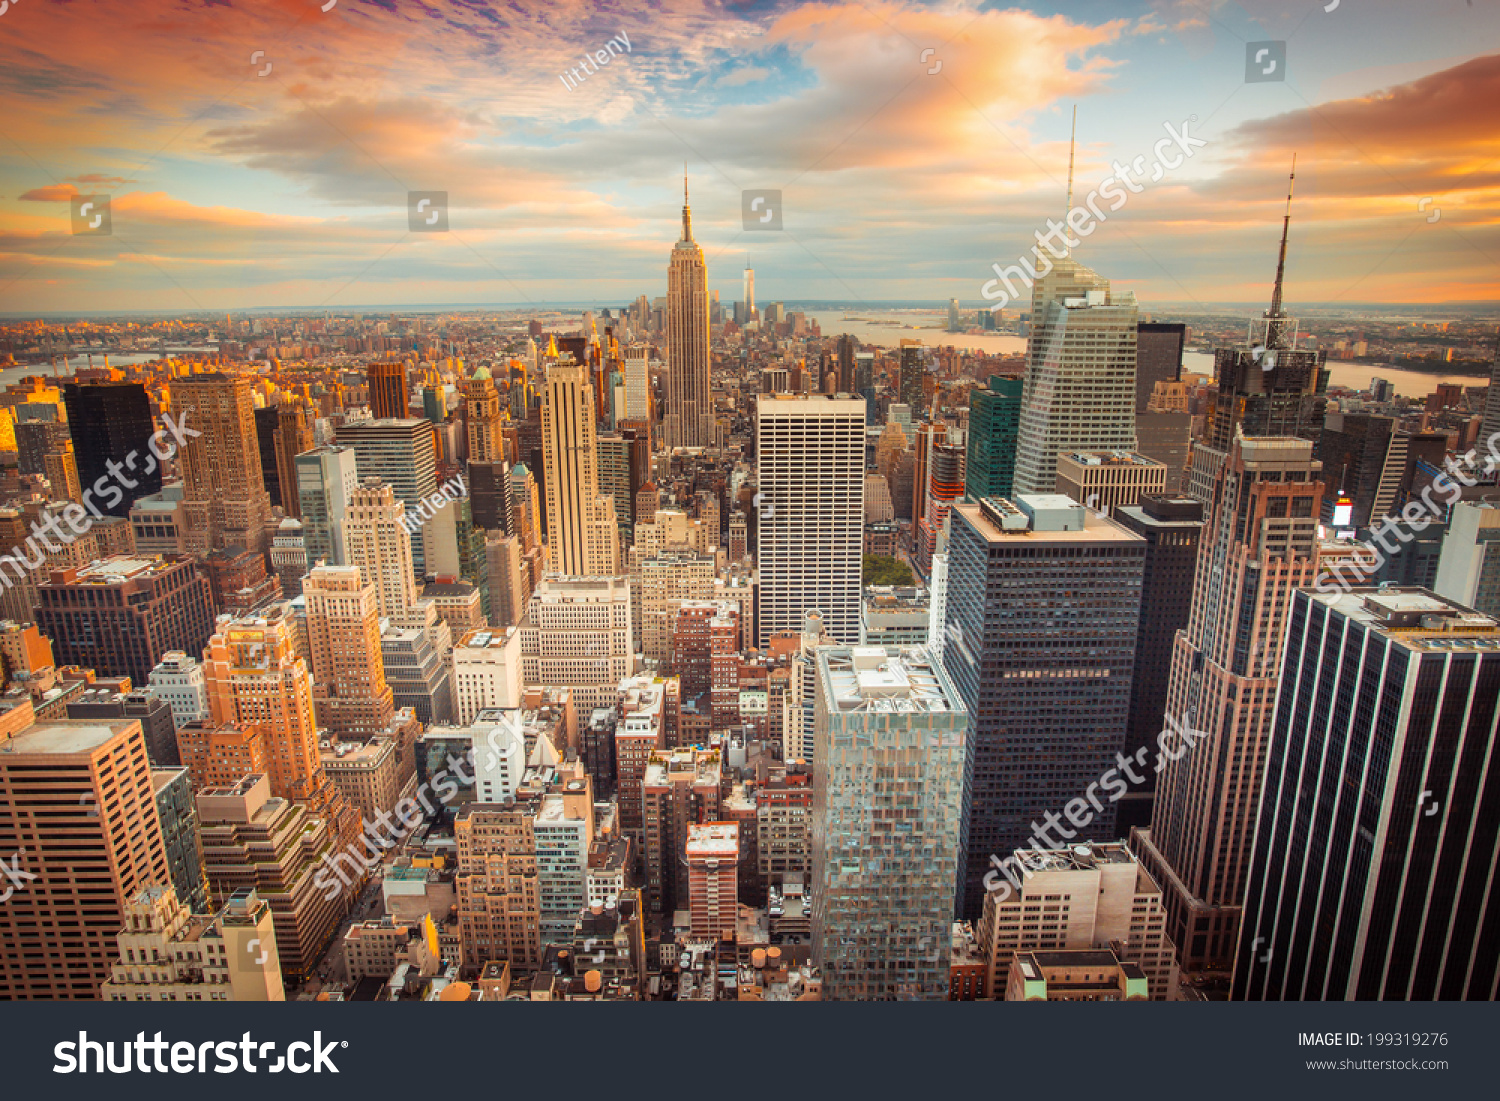 Sunset Aerial View New York City Stock Photo 199319276 ...